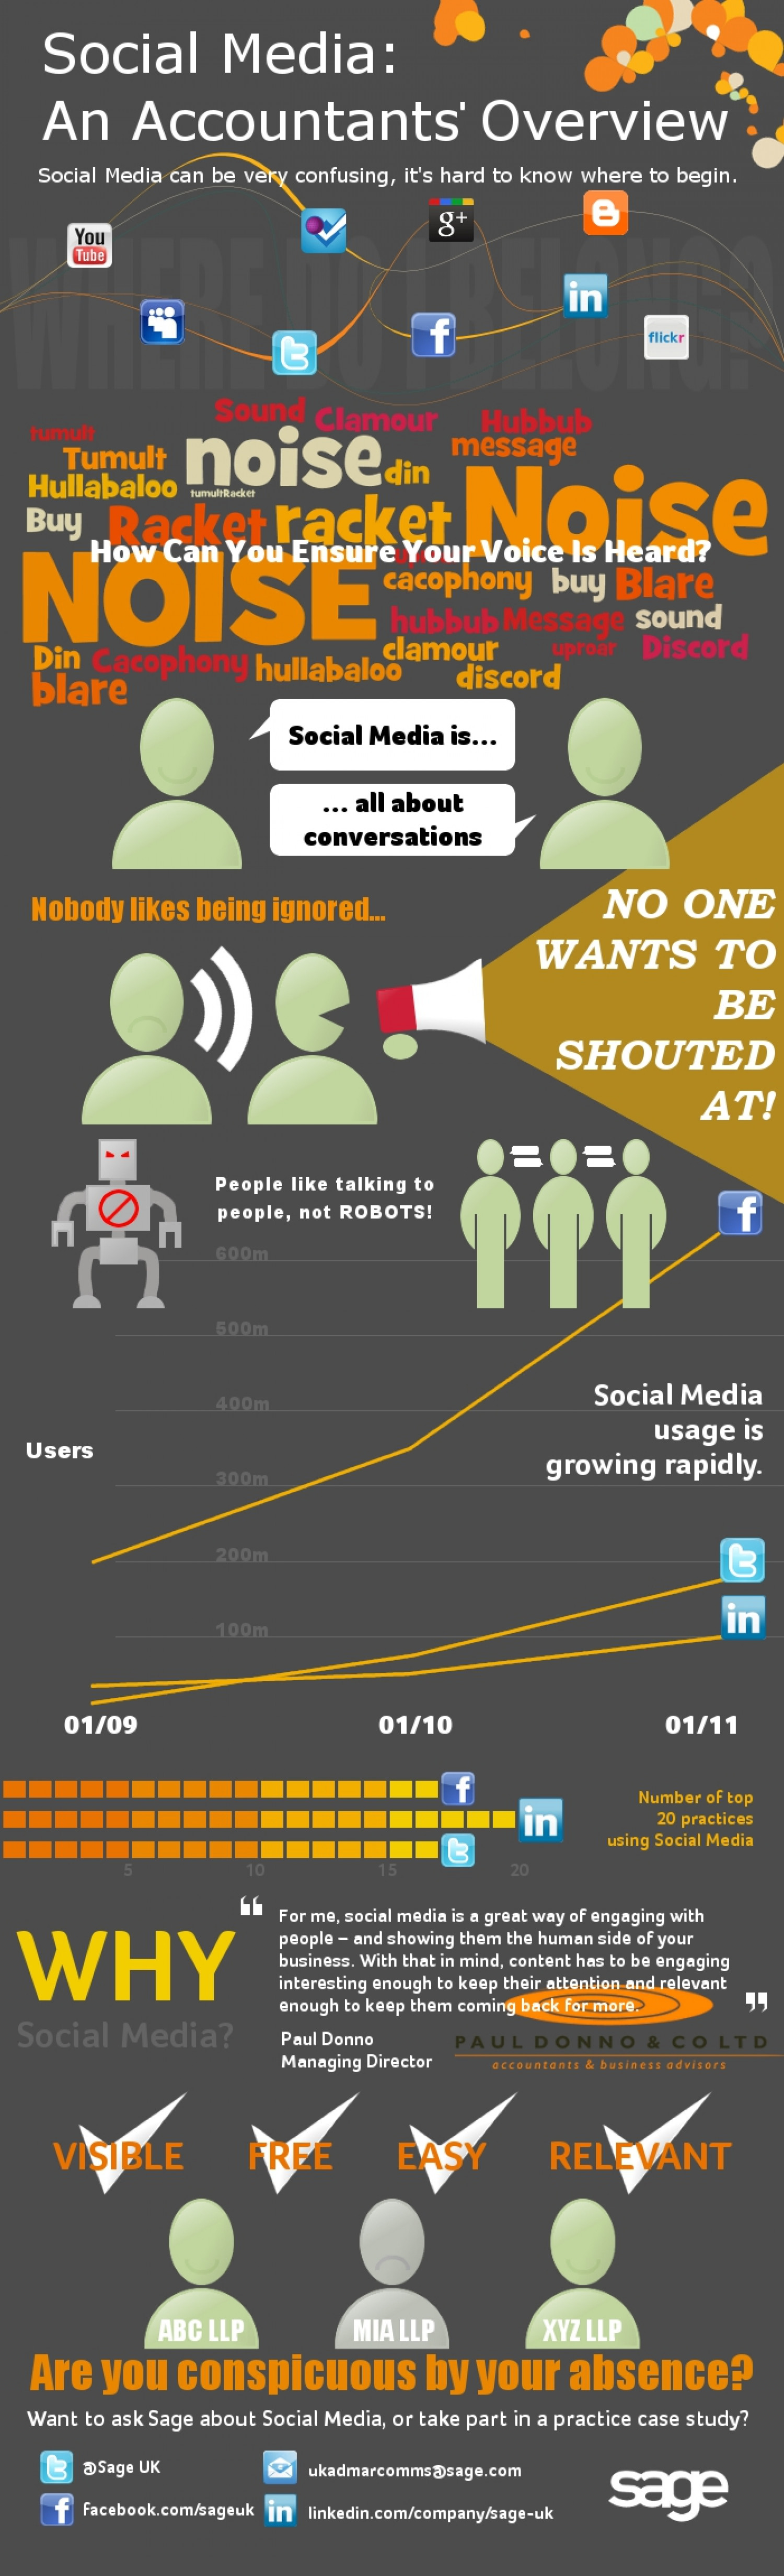 Social Media: An Accountants' Overview Infographic